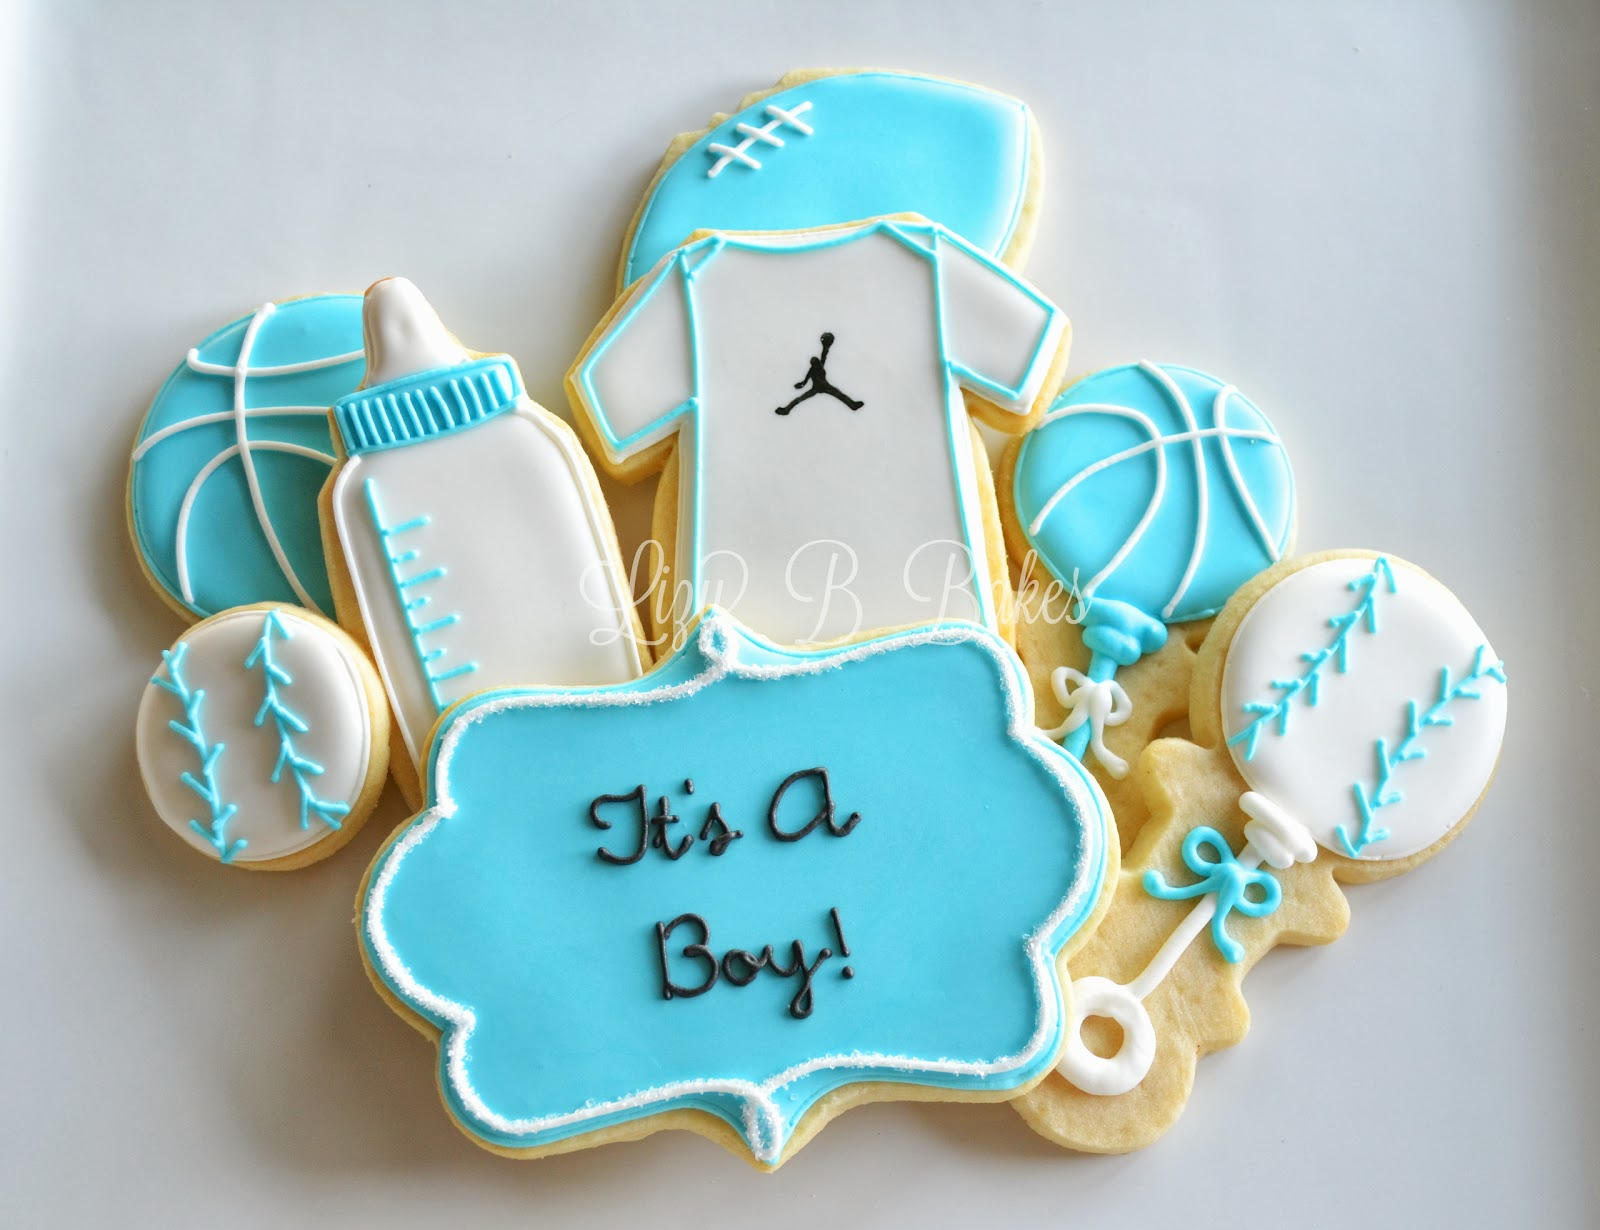 Lizy B: All-Star Baby Shower Cookies!